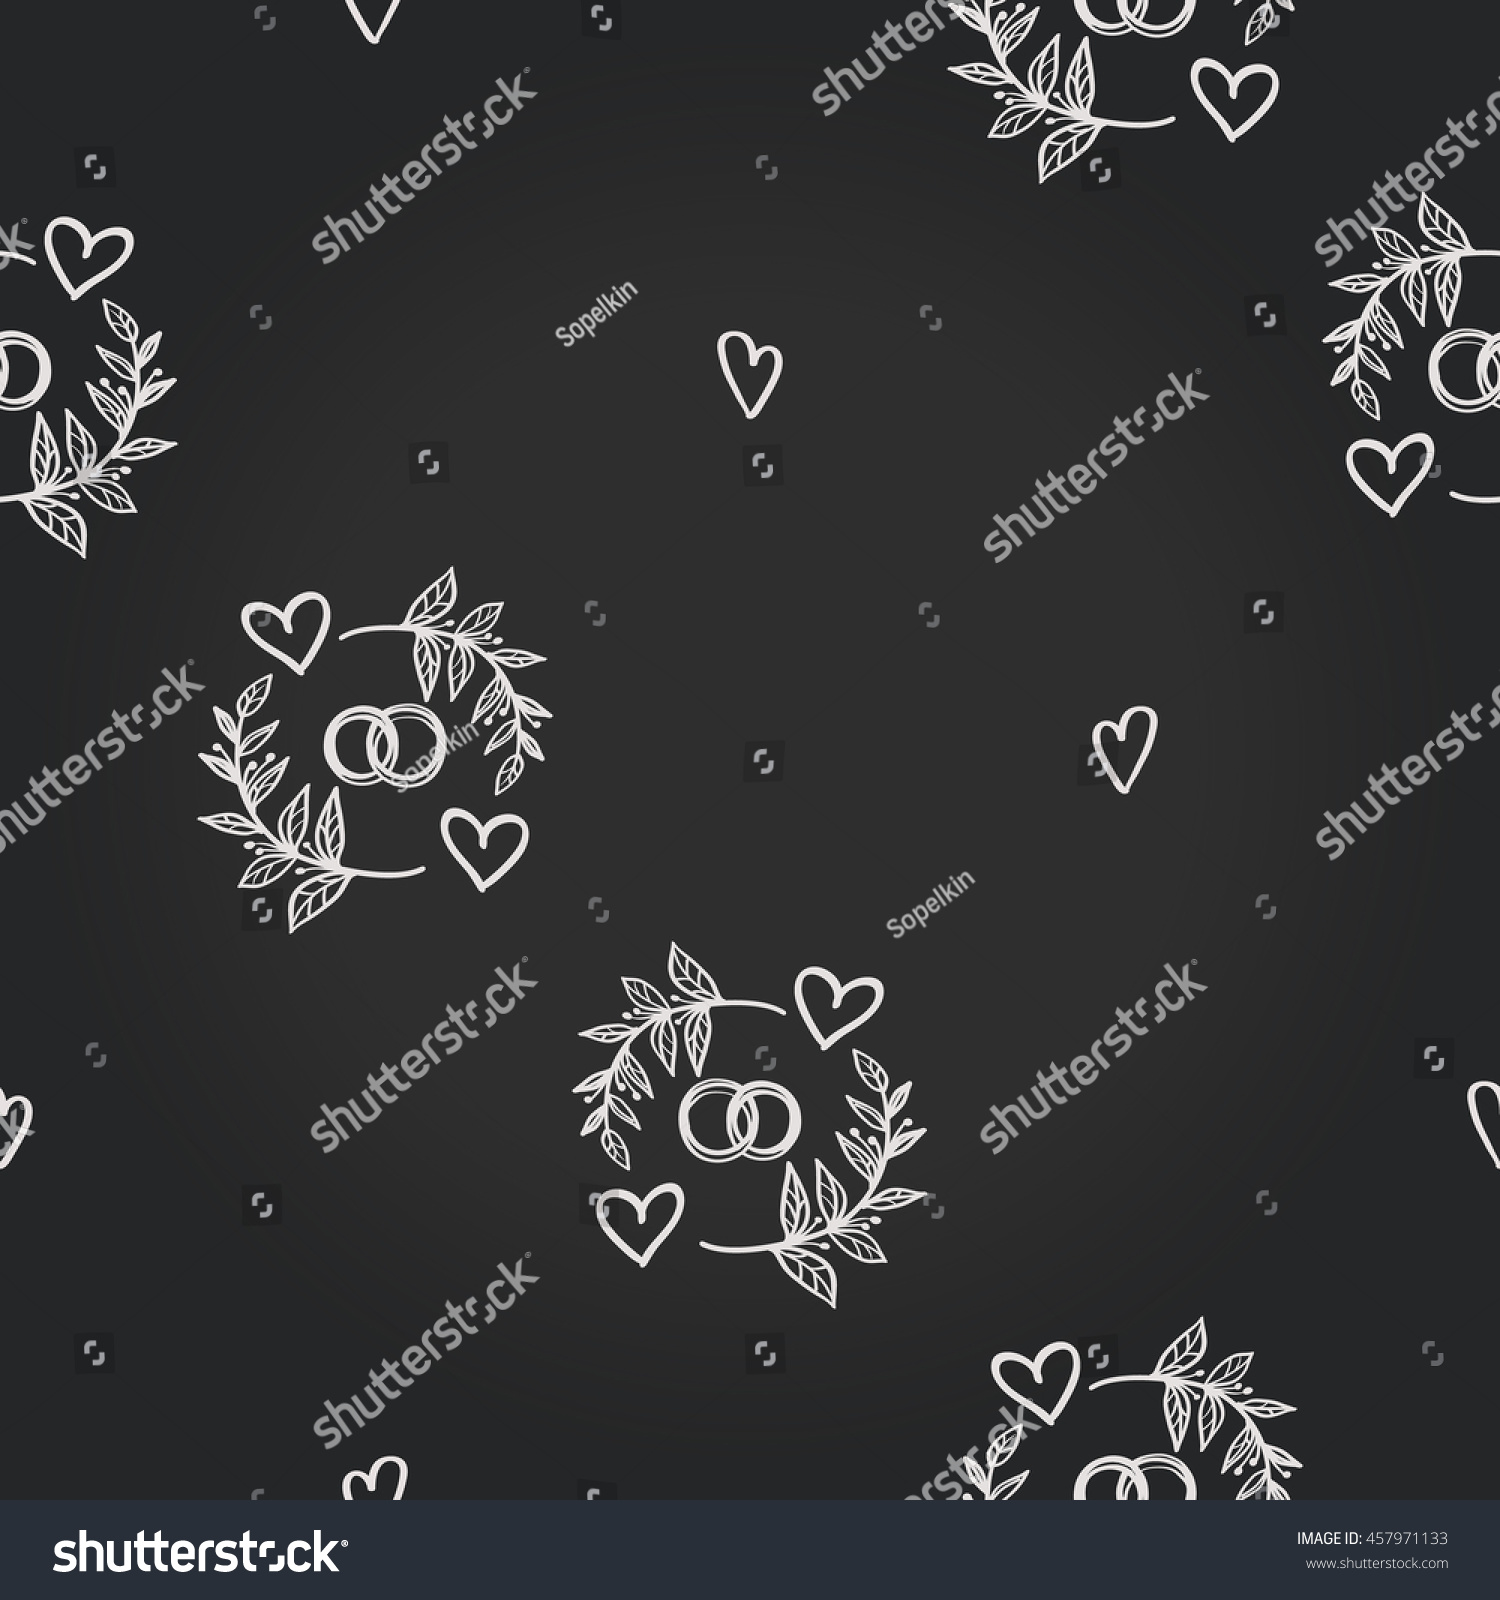 Background For Eco Forest Wedding Or Autumn Celebrations Floral Rustic Symbols And Elements In Chalkboard Hand Drawing Style Vector: Drawn Chalkboard Wedding Ring At Reisefeber.org